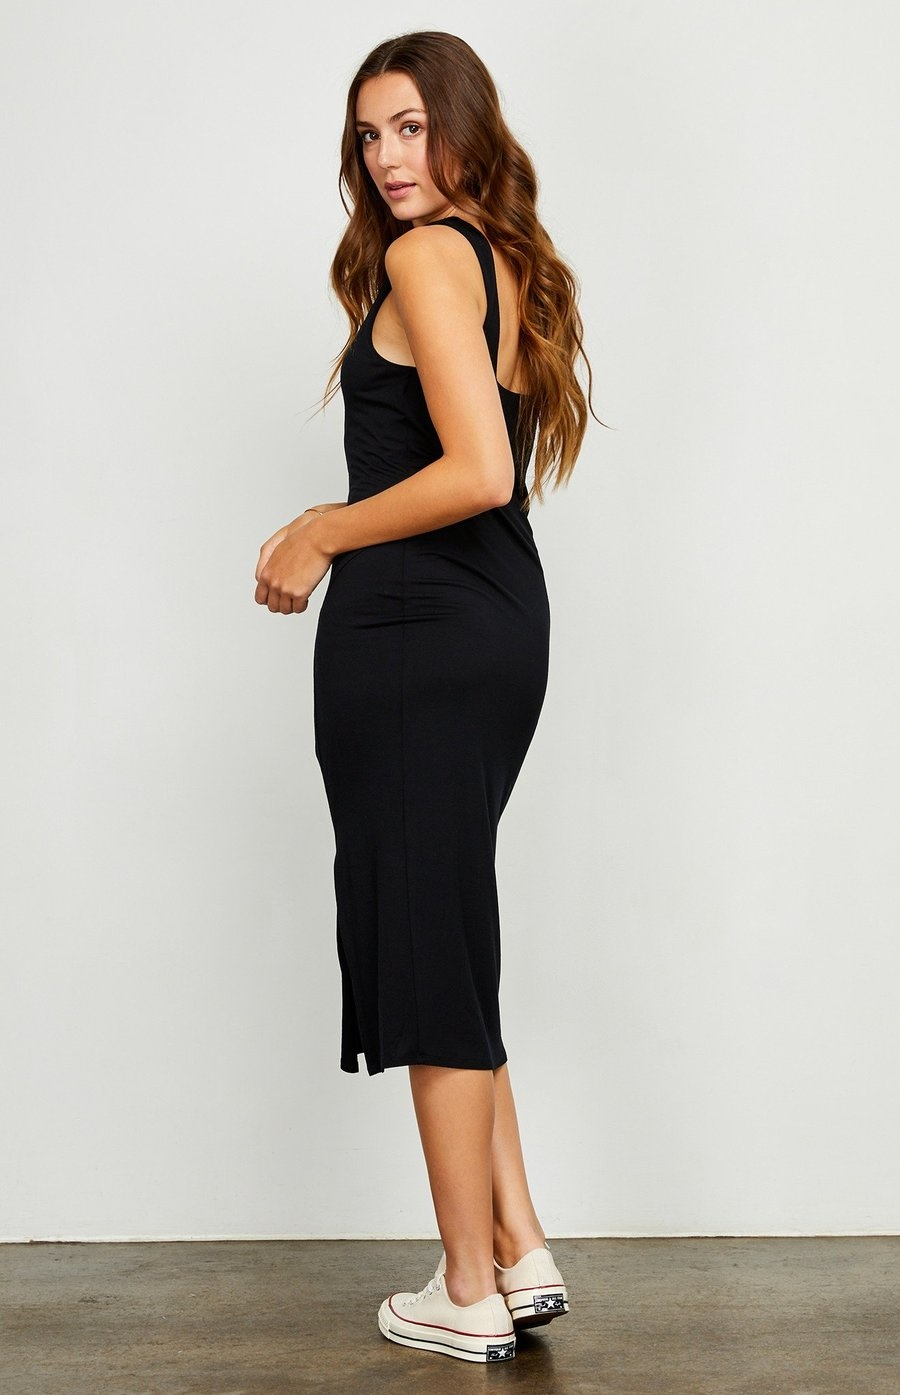 Gentlefawn Avril Dress - Black